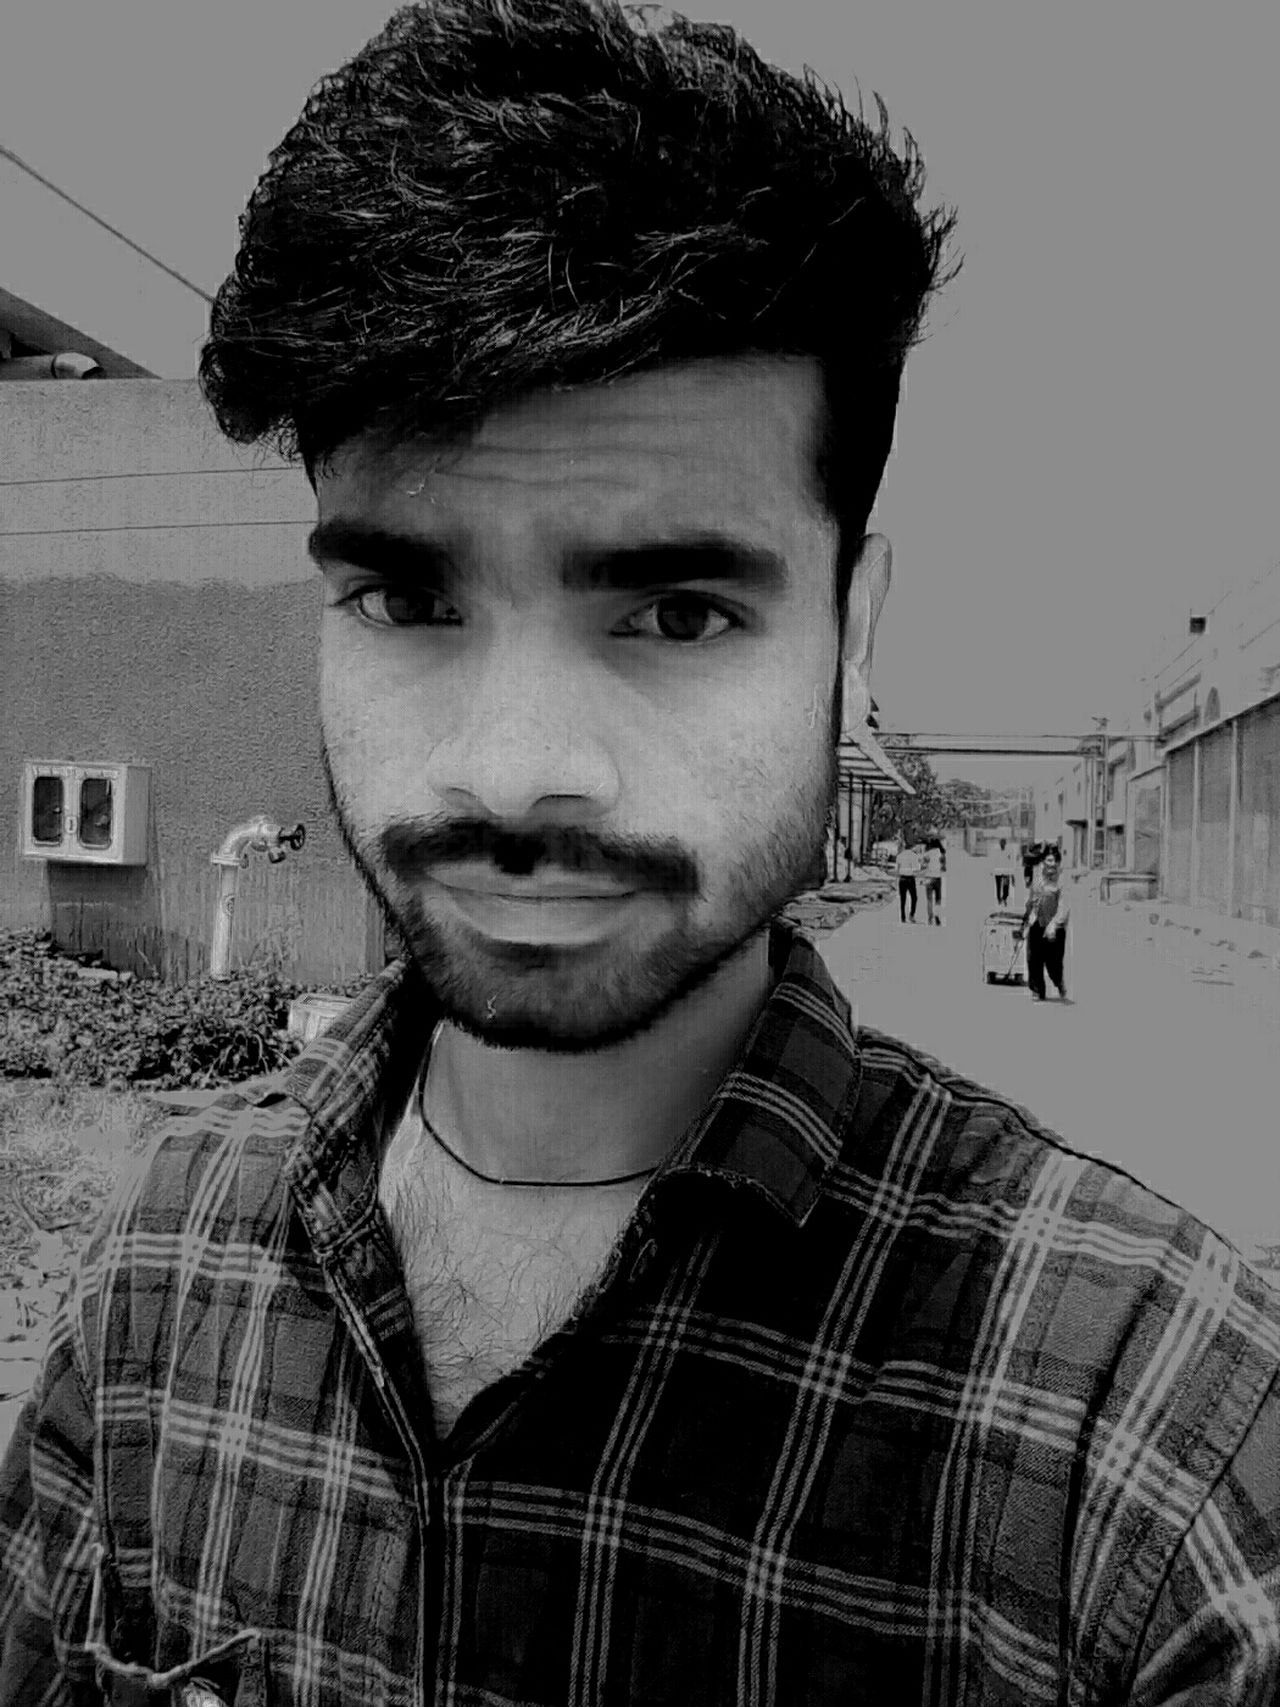 Good Afternoon Friends ☺ Good Afternoon From Me And My Boo  Looking At Camera One Person People ':/5+(:'''/*''@'-@$3'@$$ Looking At Camera .my Bestfriend And I  I'm Rajendra Crazy Boy@@@@@@@@@@@@com 💪💪💪💪💪💪 Everyone Wants To Be Your Sun, But Not Me. I Want To Be Your Moon So I Can Light Up Your Darkest Moments When Your Sun Isn't Around. Human Face Loveing Him ❤ Love Is In The Air ?':!(?':!)?(:!